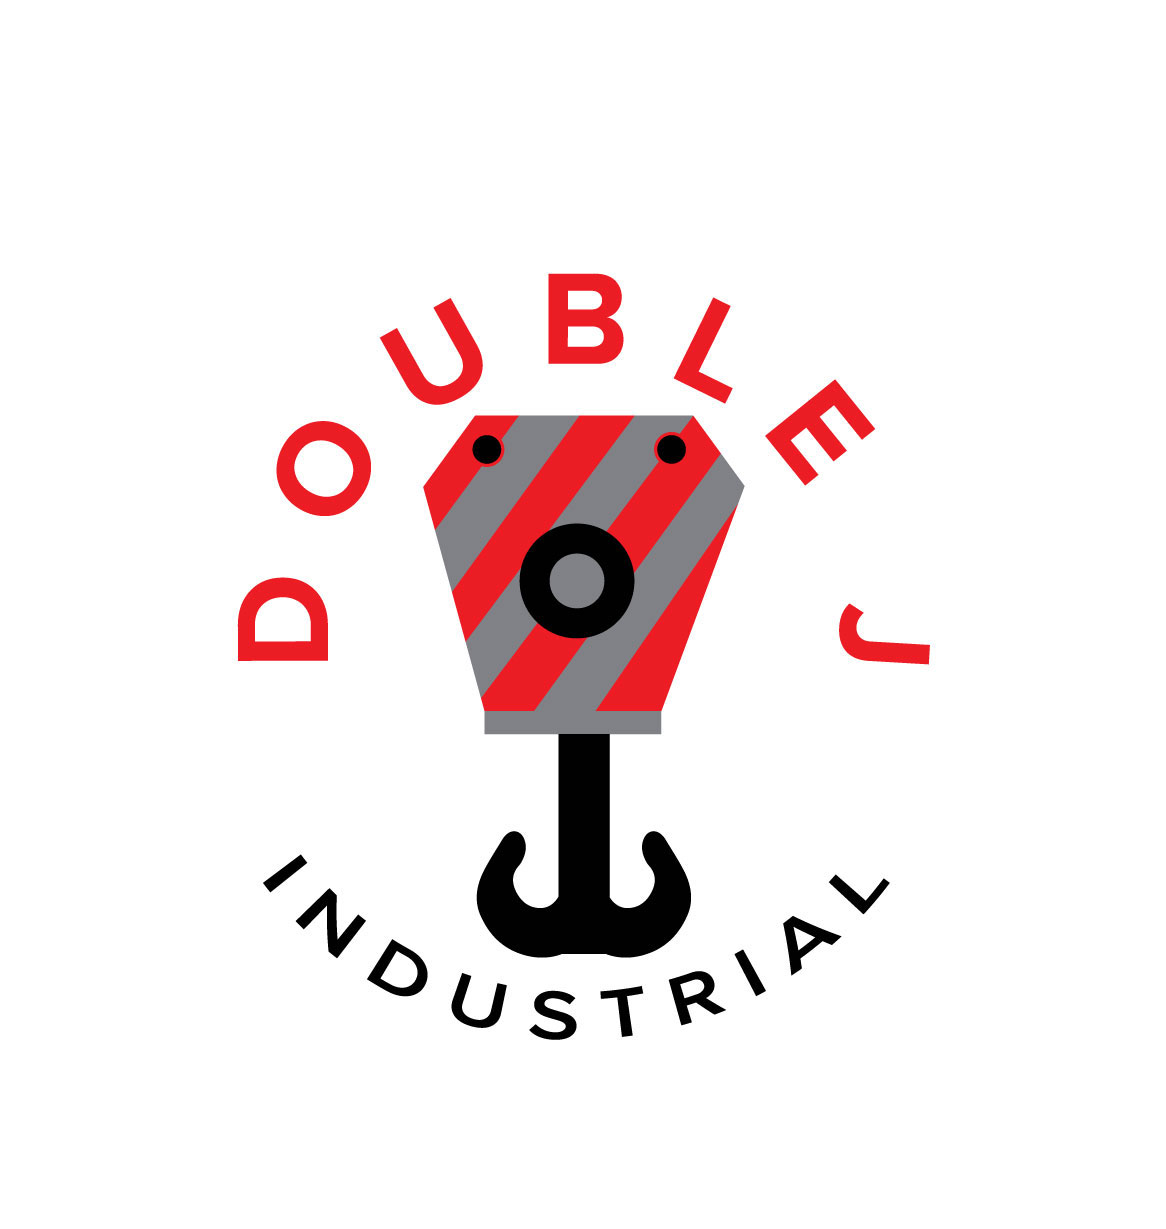 Double J Industrial